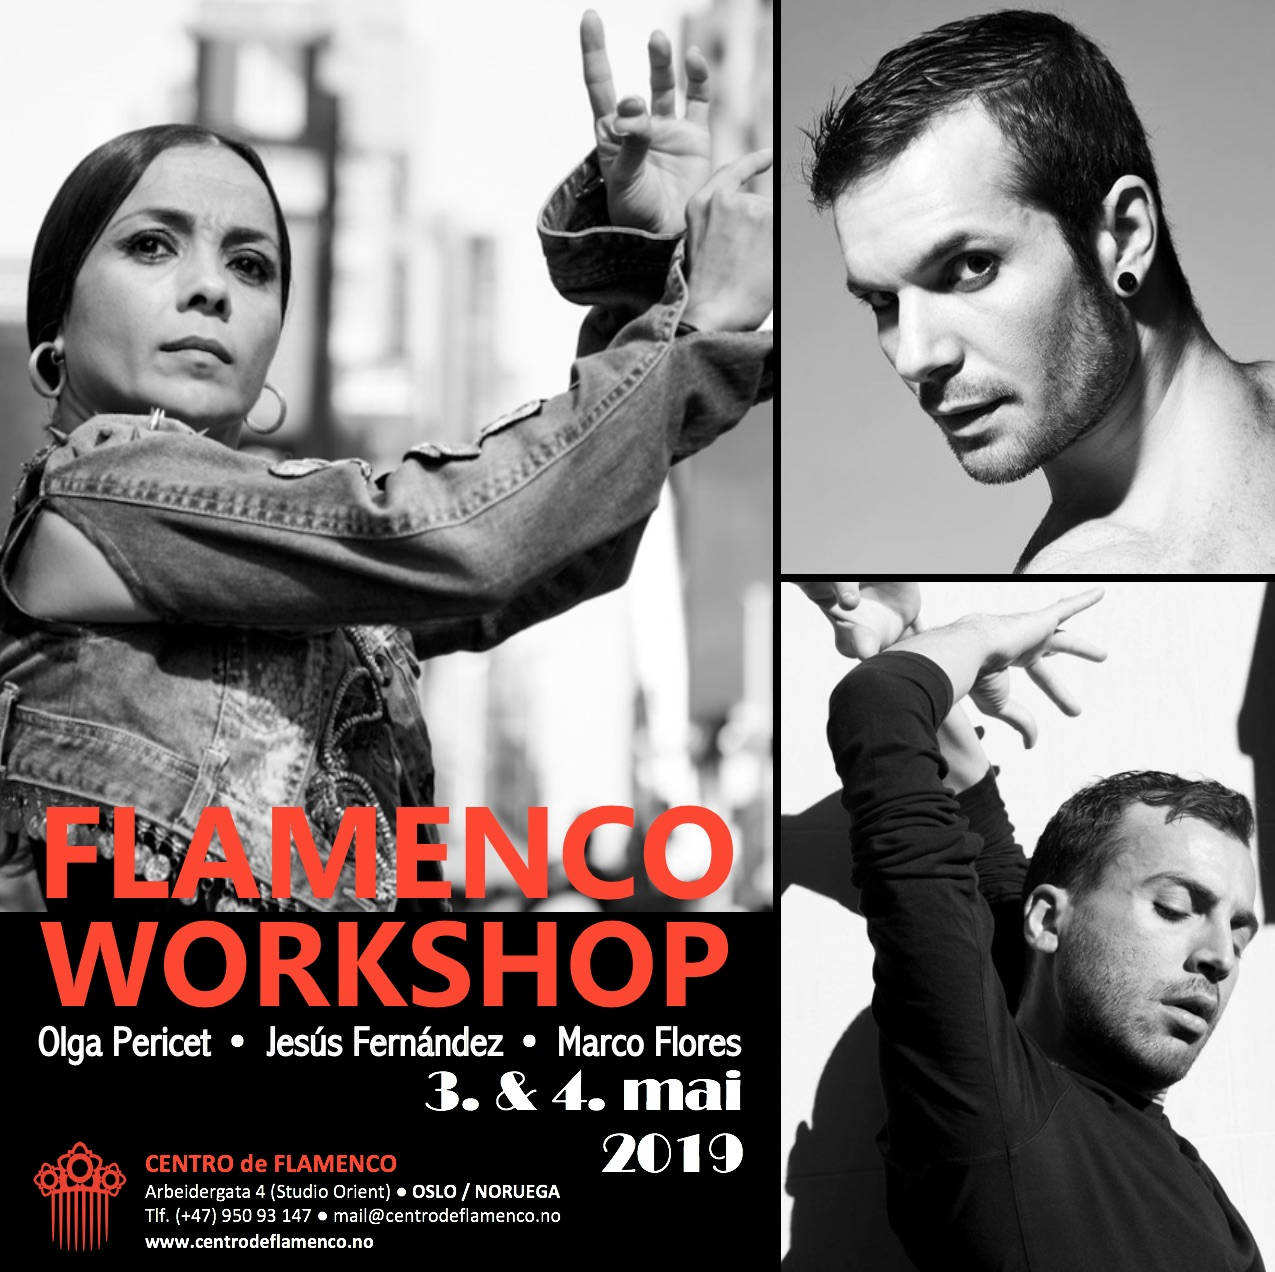 Workshop mai 2019